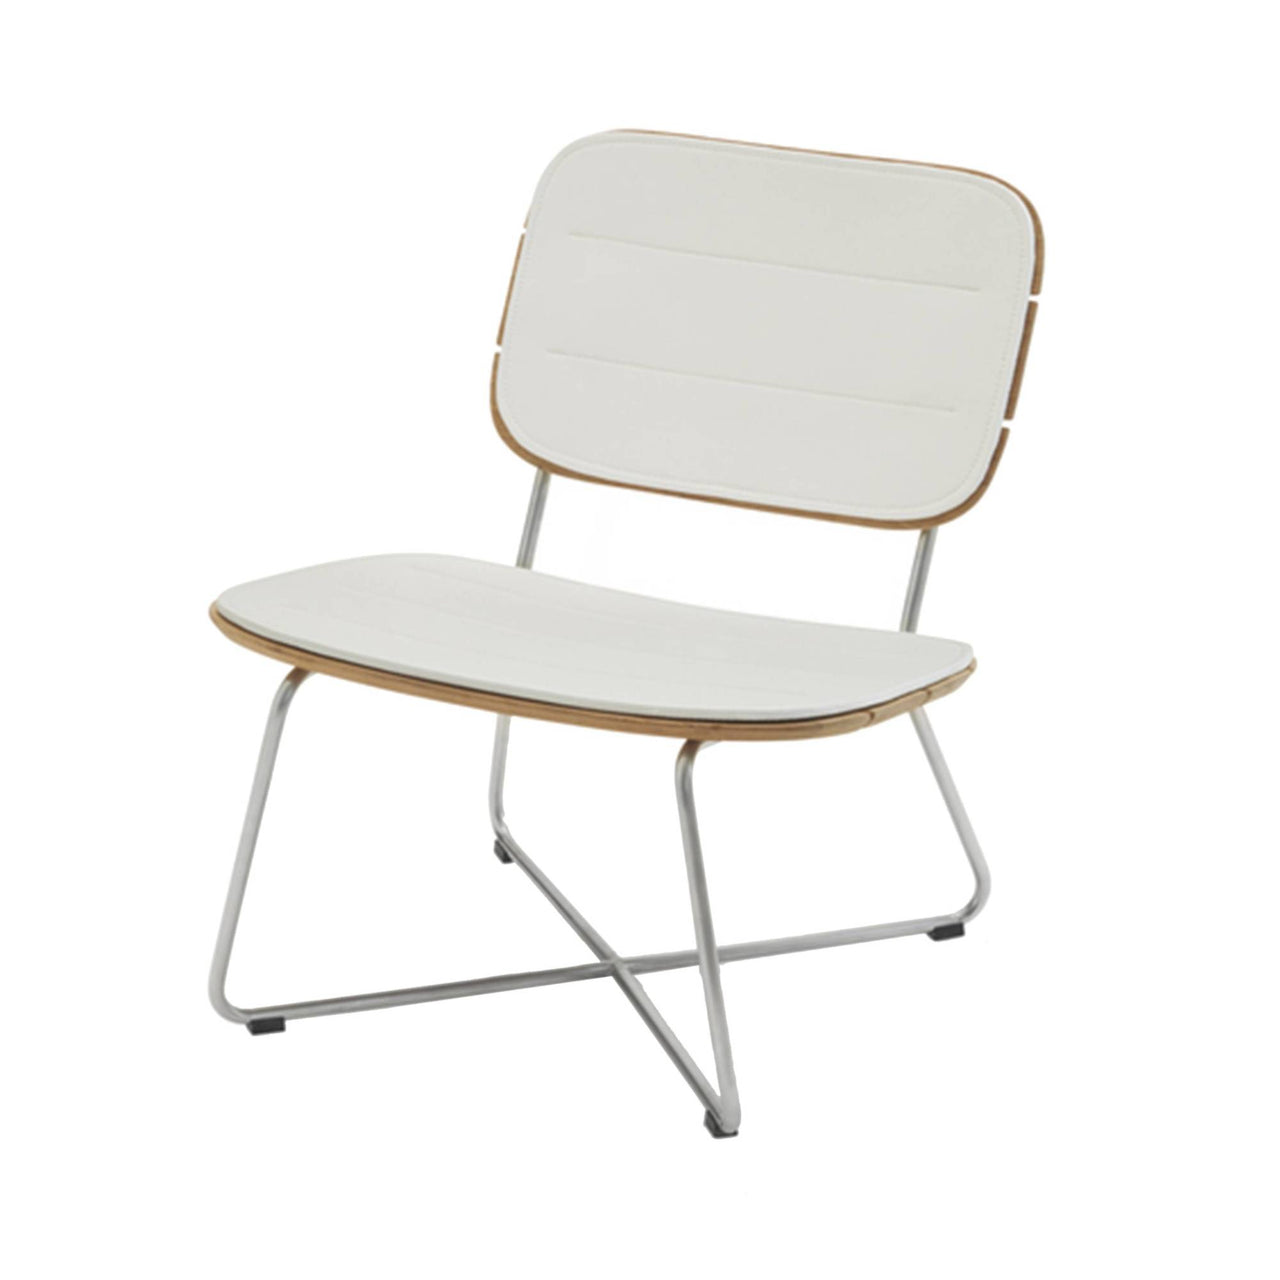 Lilium Lounge Chair: Lilium Lounge Chair + Cushion - White